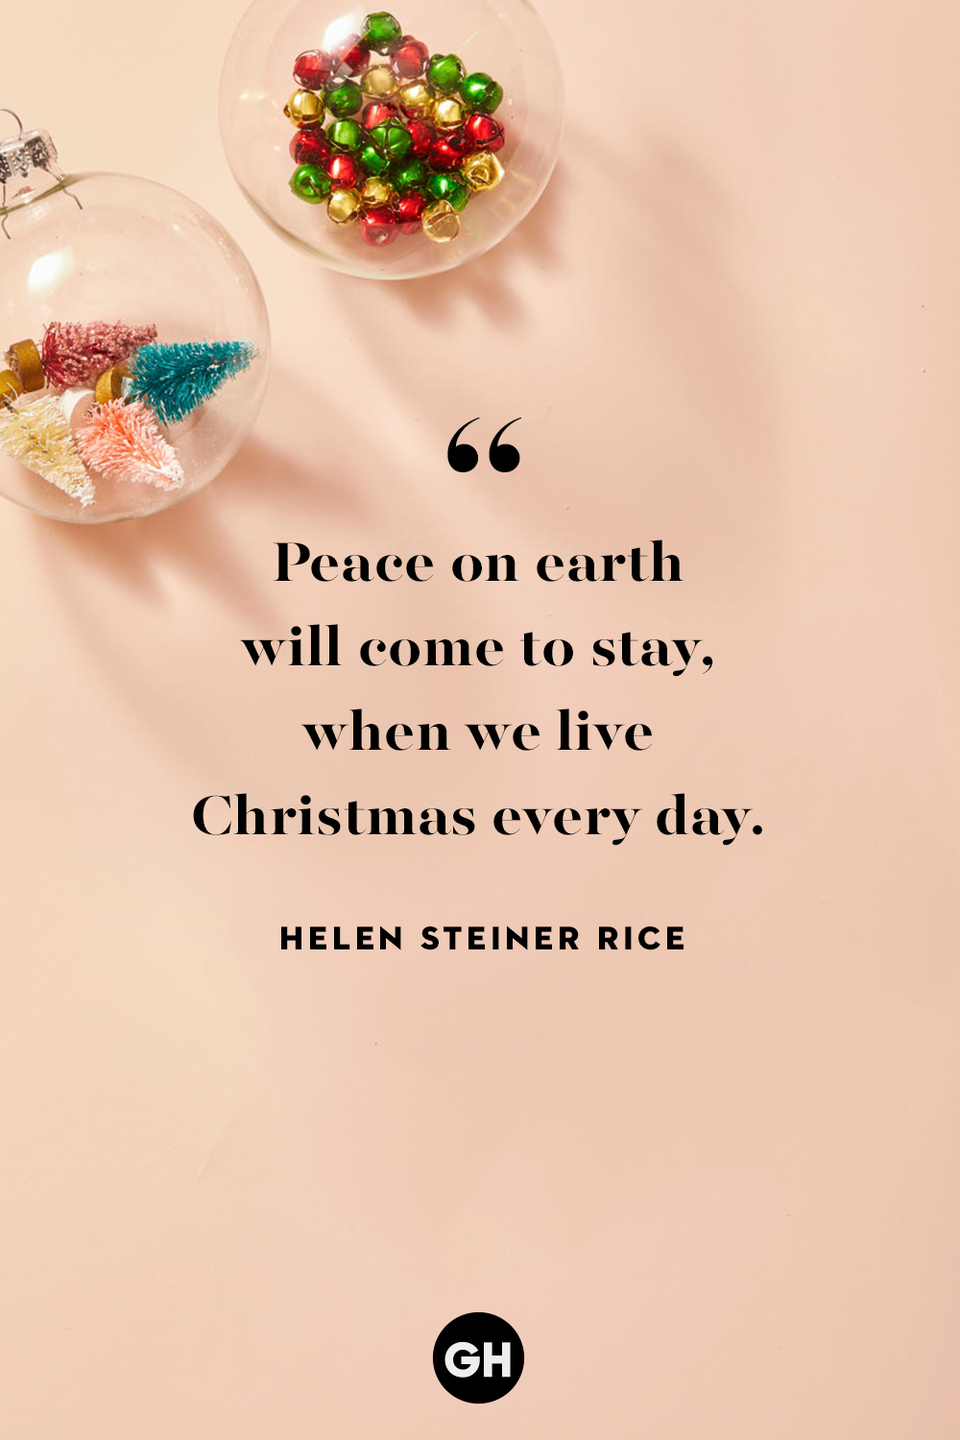 <p>Peace on earth will come to stay, when we live Christmas every day. </p>